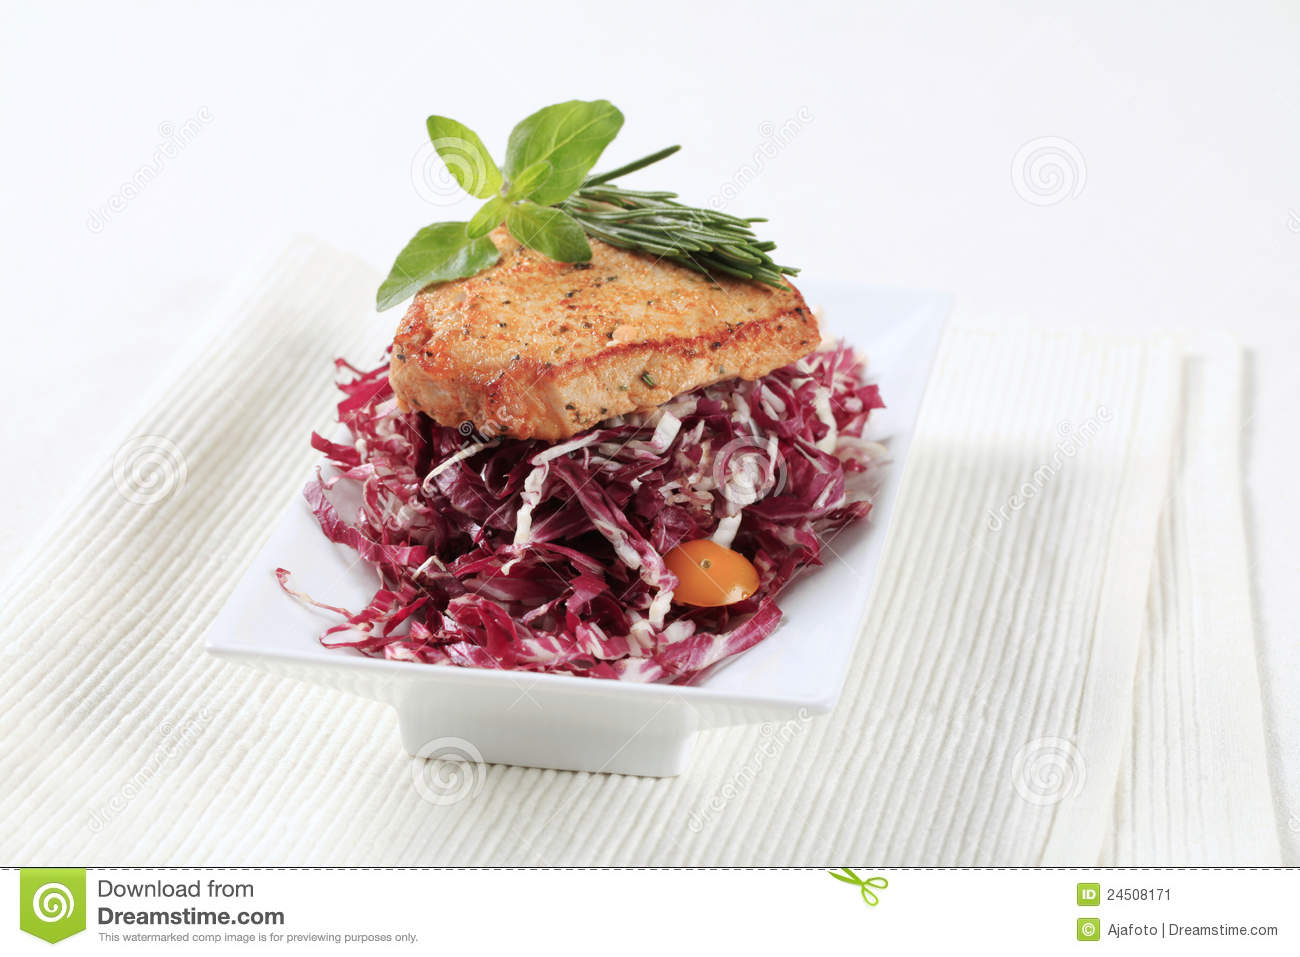 Marinated Pork And Red Cabbage Stock Image - Image: 24508171